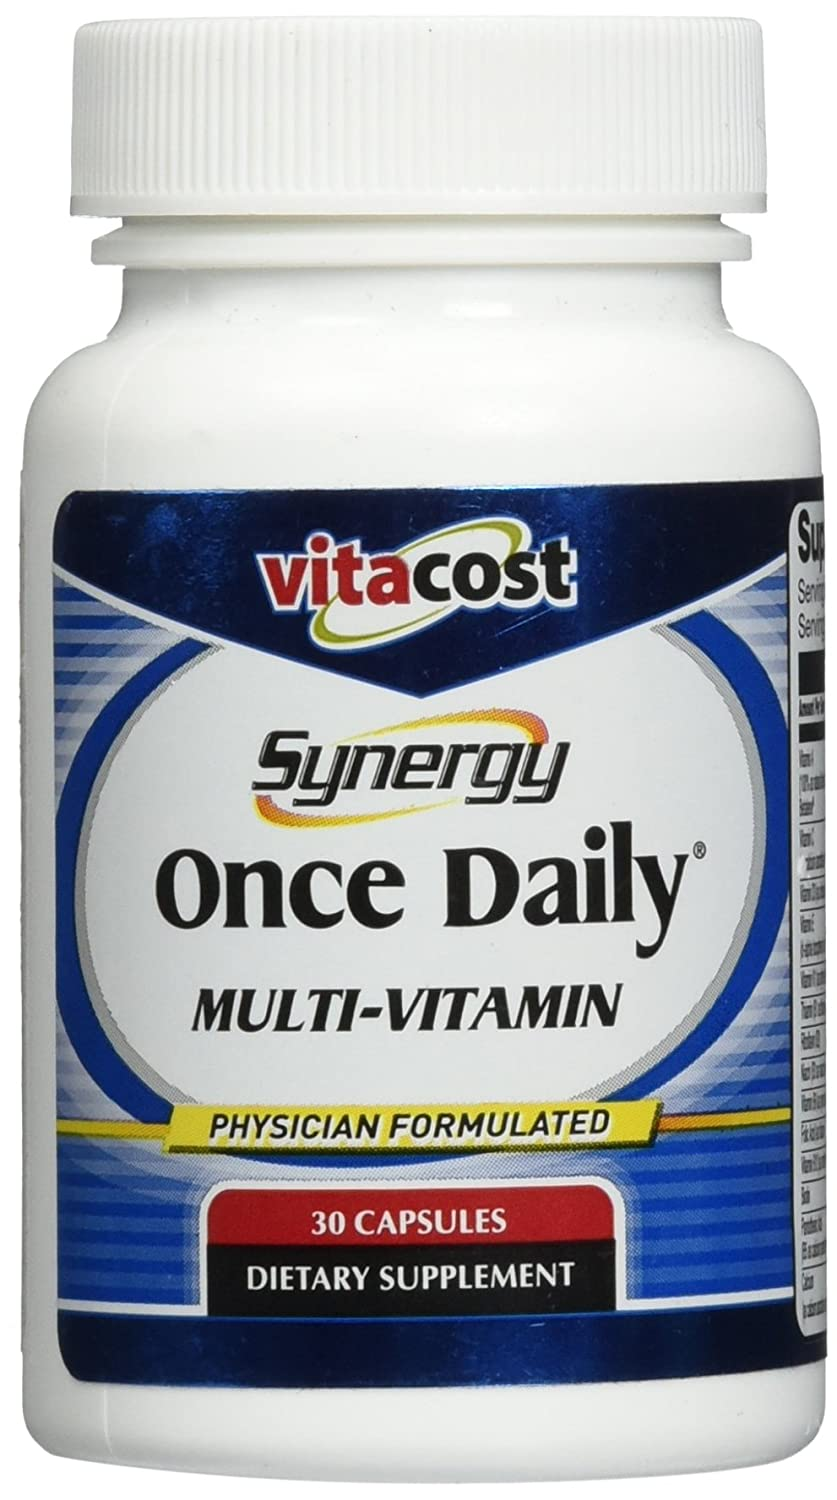 Vitacost Synergy Once Daily Multi-Vitamin — 30 Capsules